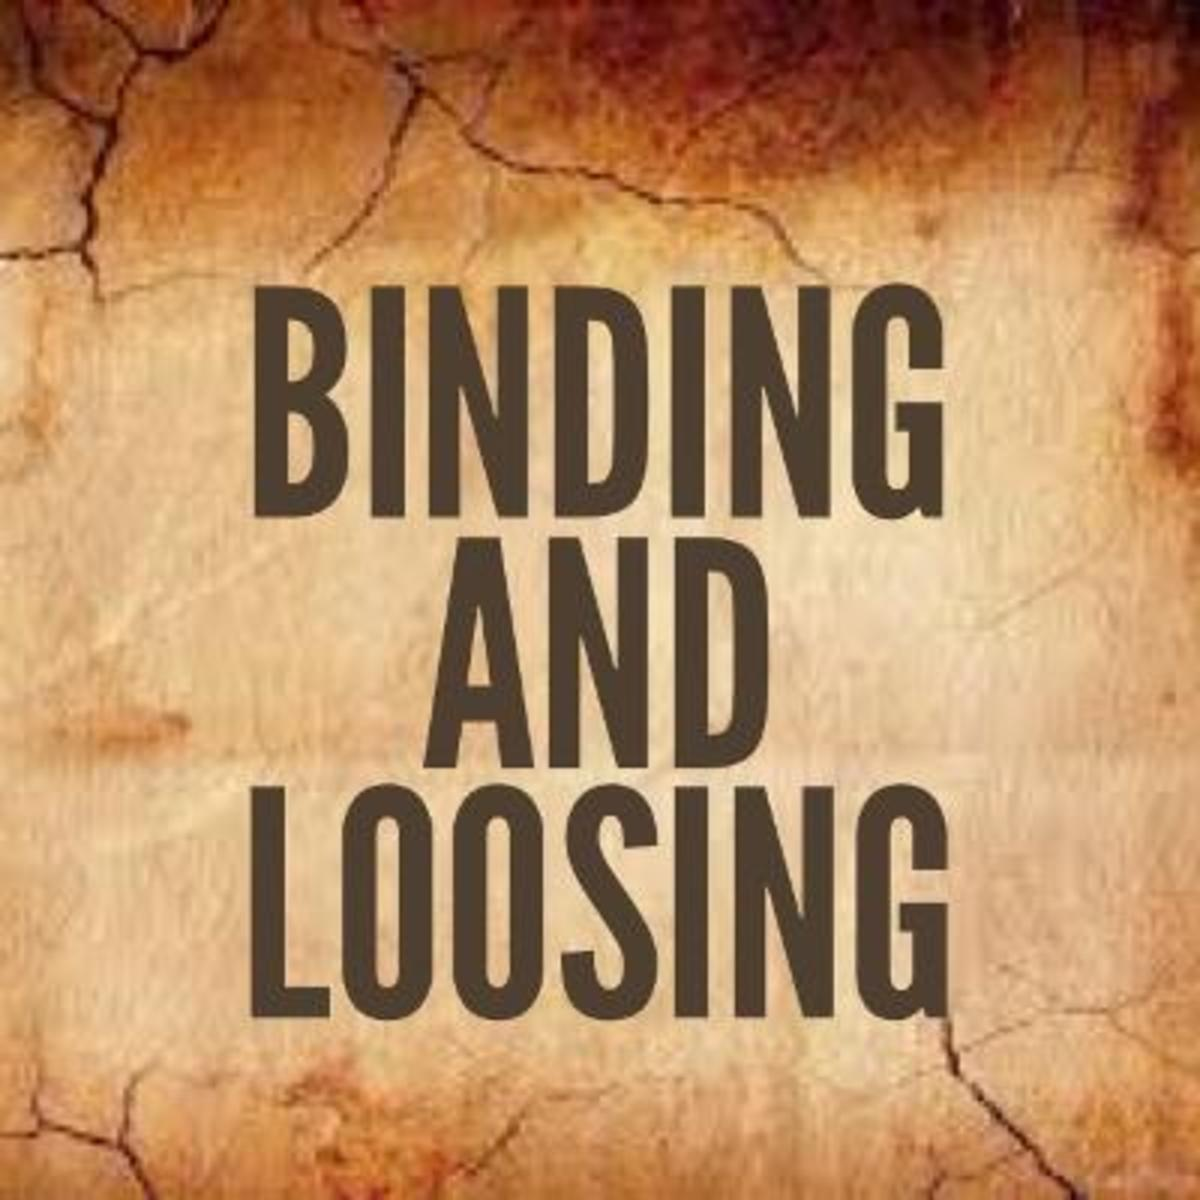 binding-and-loosing-can-that-concept-be-used-on-covid-19